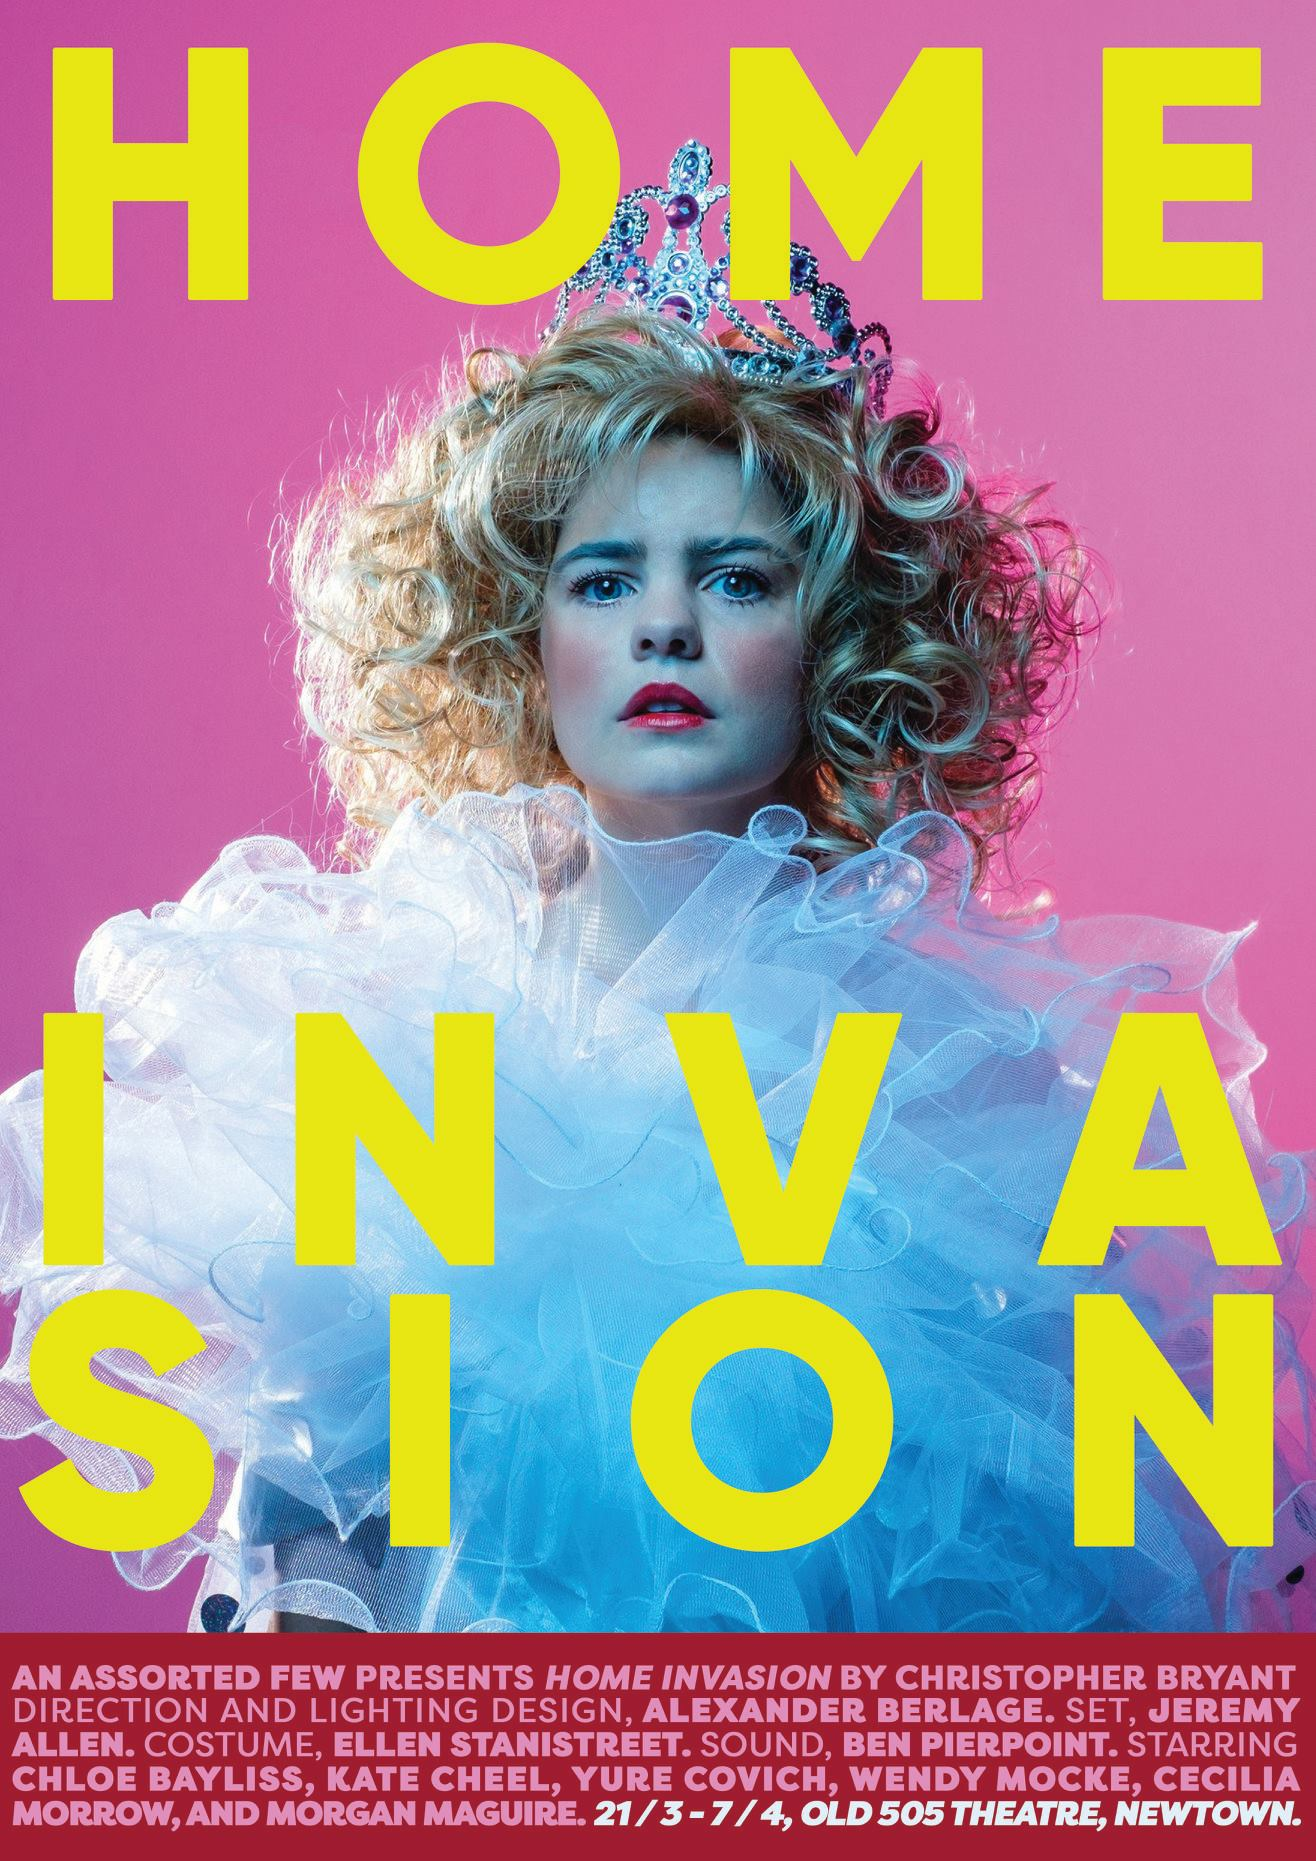 Chloe Bayliss in Home Invasion (poster version), taken with the Fuji X-T2 and the 35mm f/1.4 lens